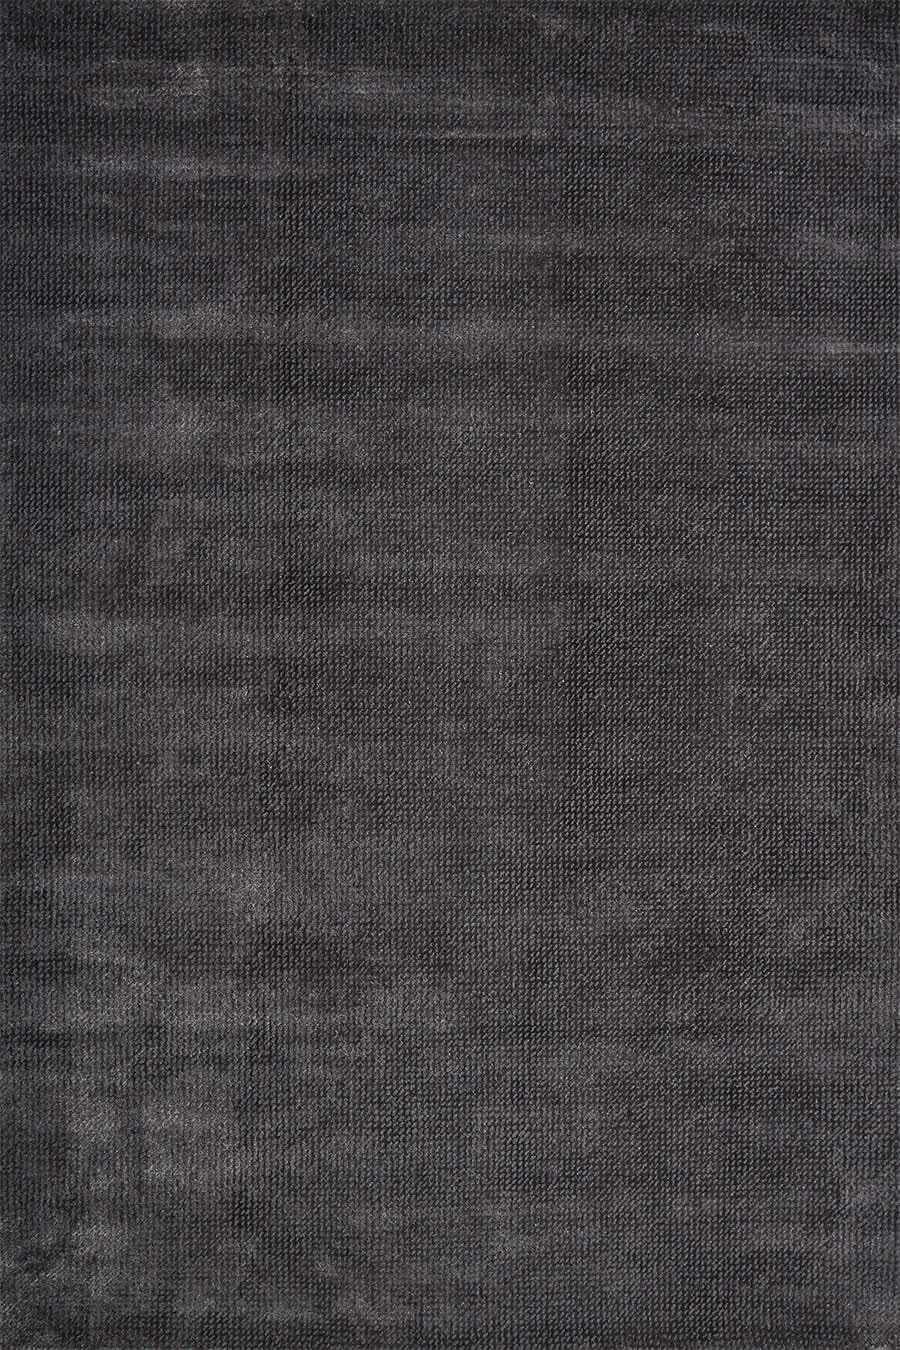 Overhead view of textured Nickel rug in charcoal colour